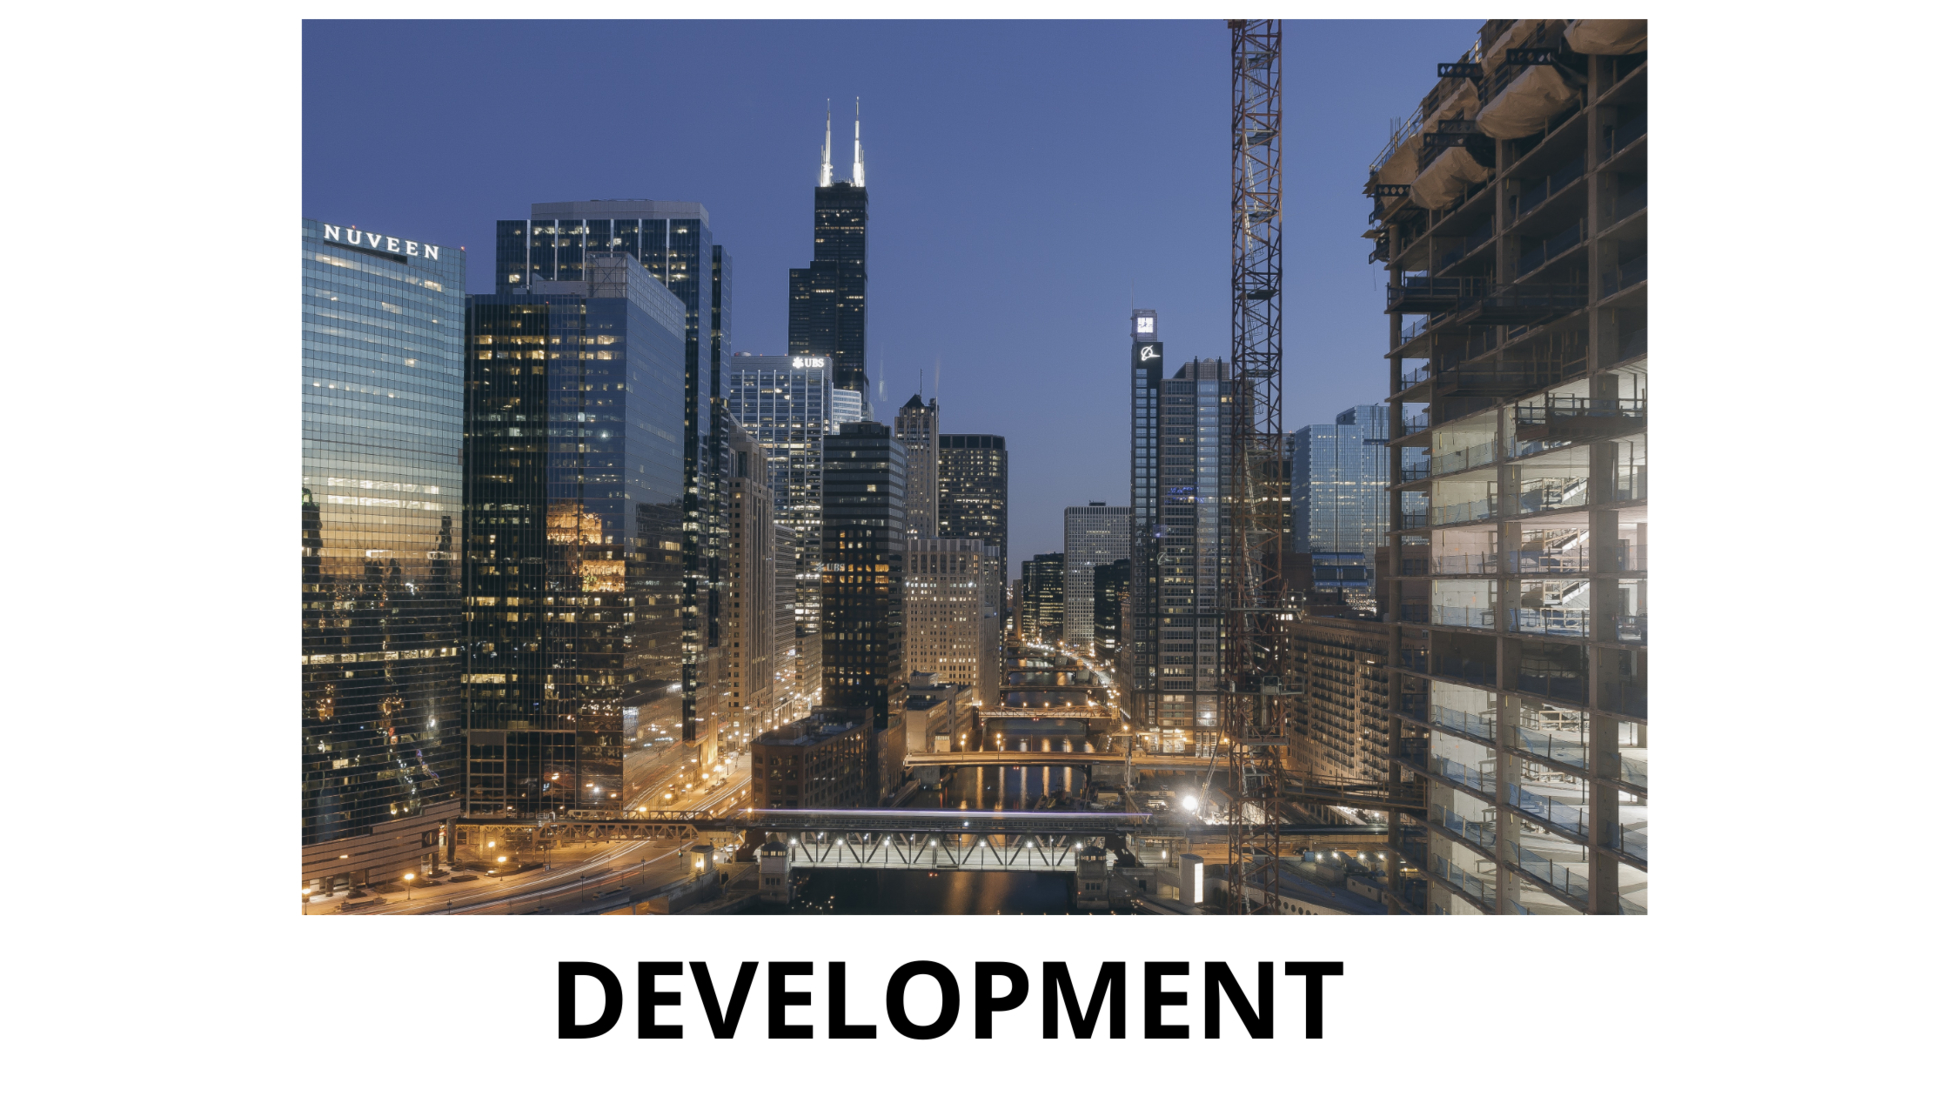 Development: A way of destructing environment